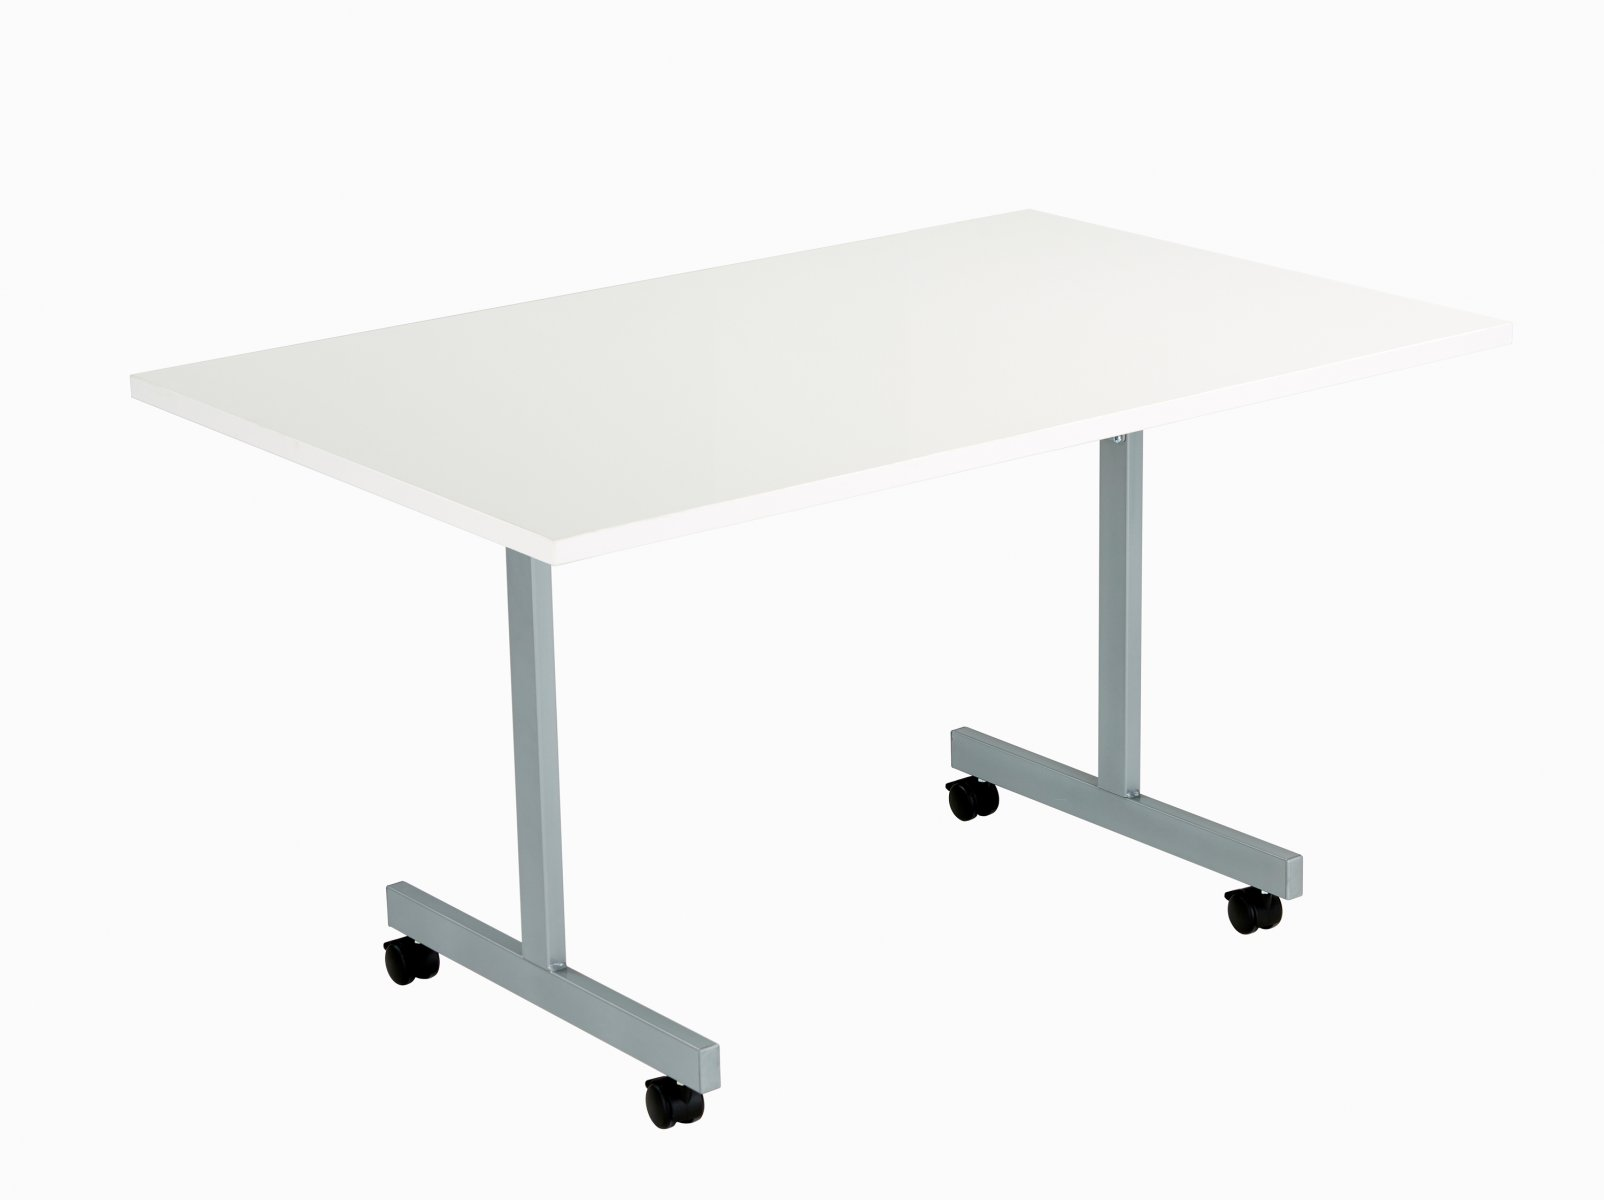 One Eighty Rectangular 120 x 70 Flip Top Meeting Table - White